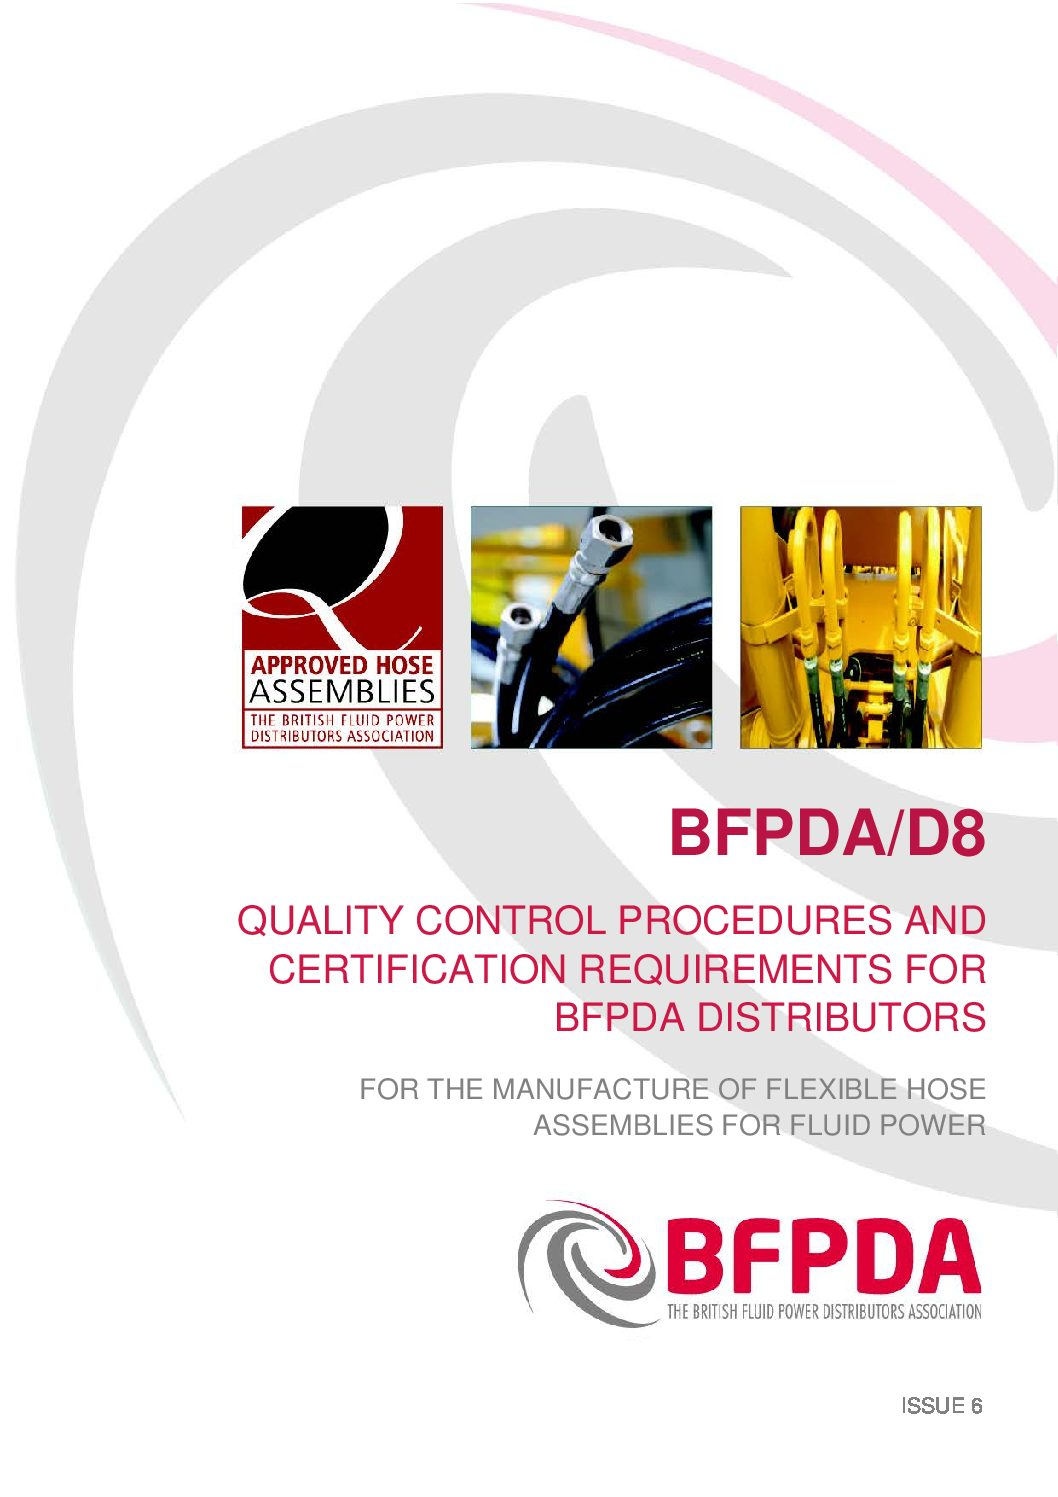 Quality control procedures and certification requirements for BFPDA distributors for the manufacture of flexible hose assemblies for hydraulic fluid power